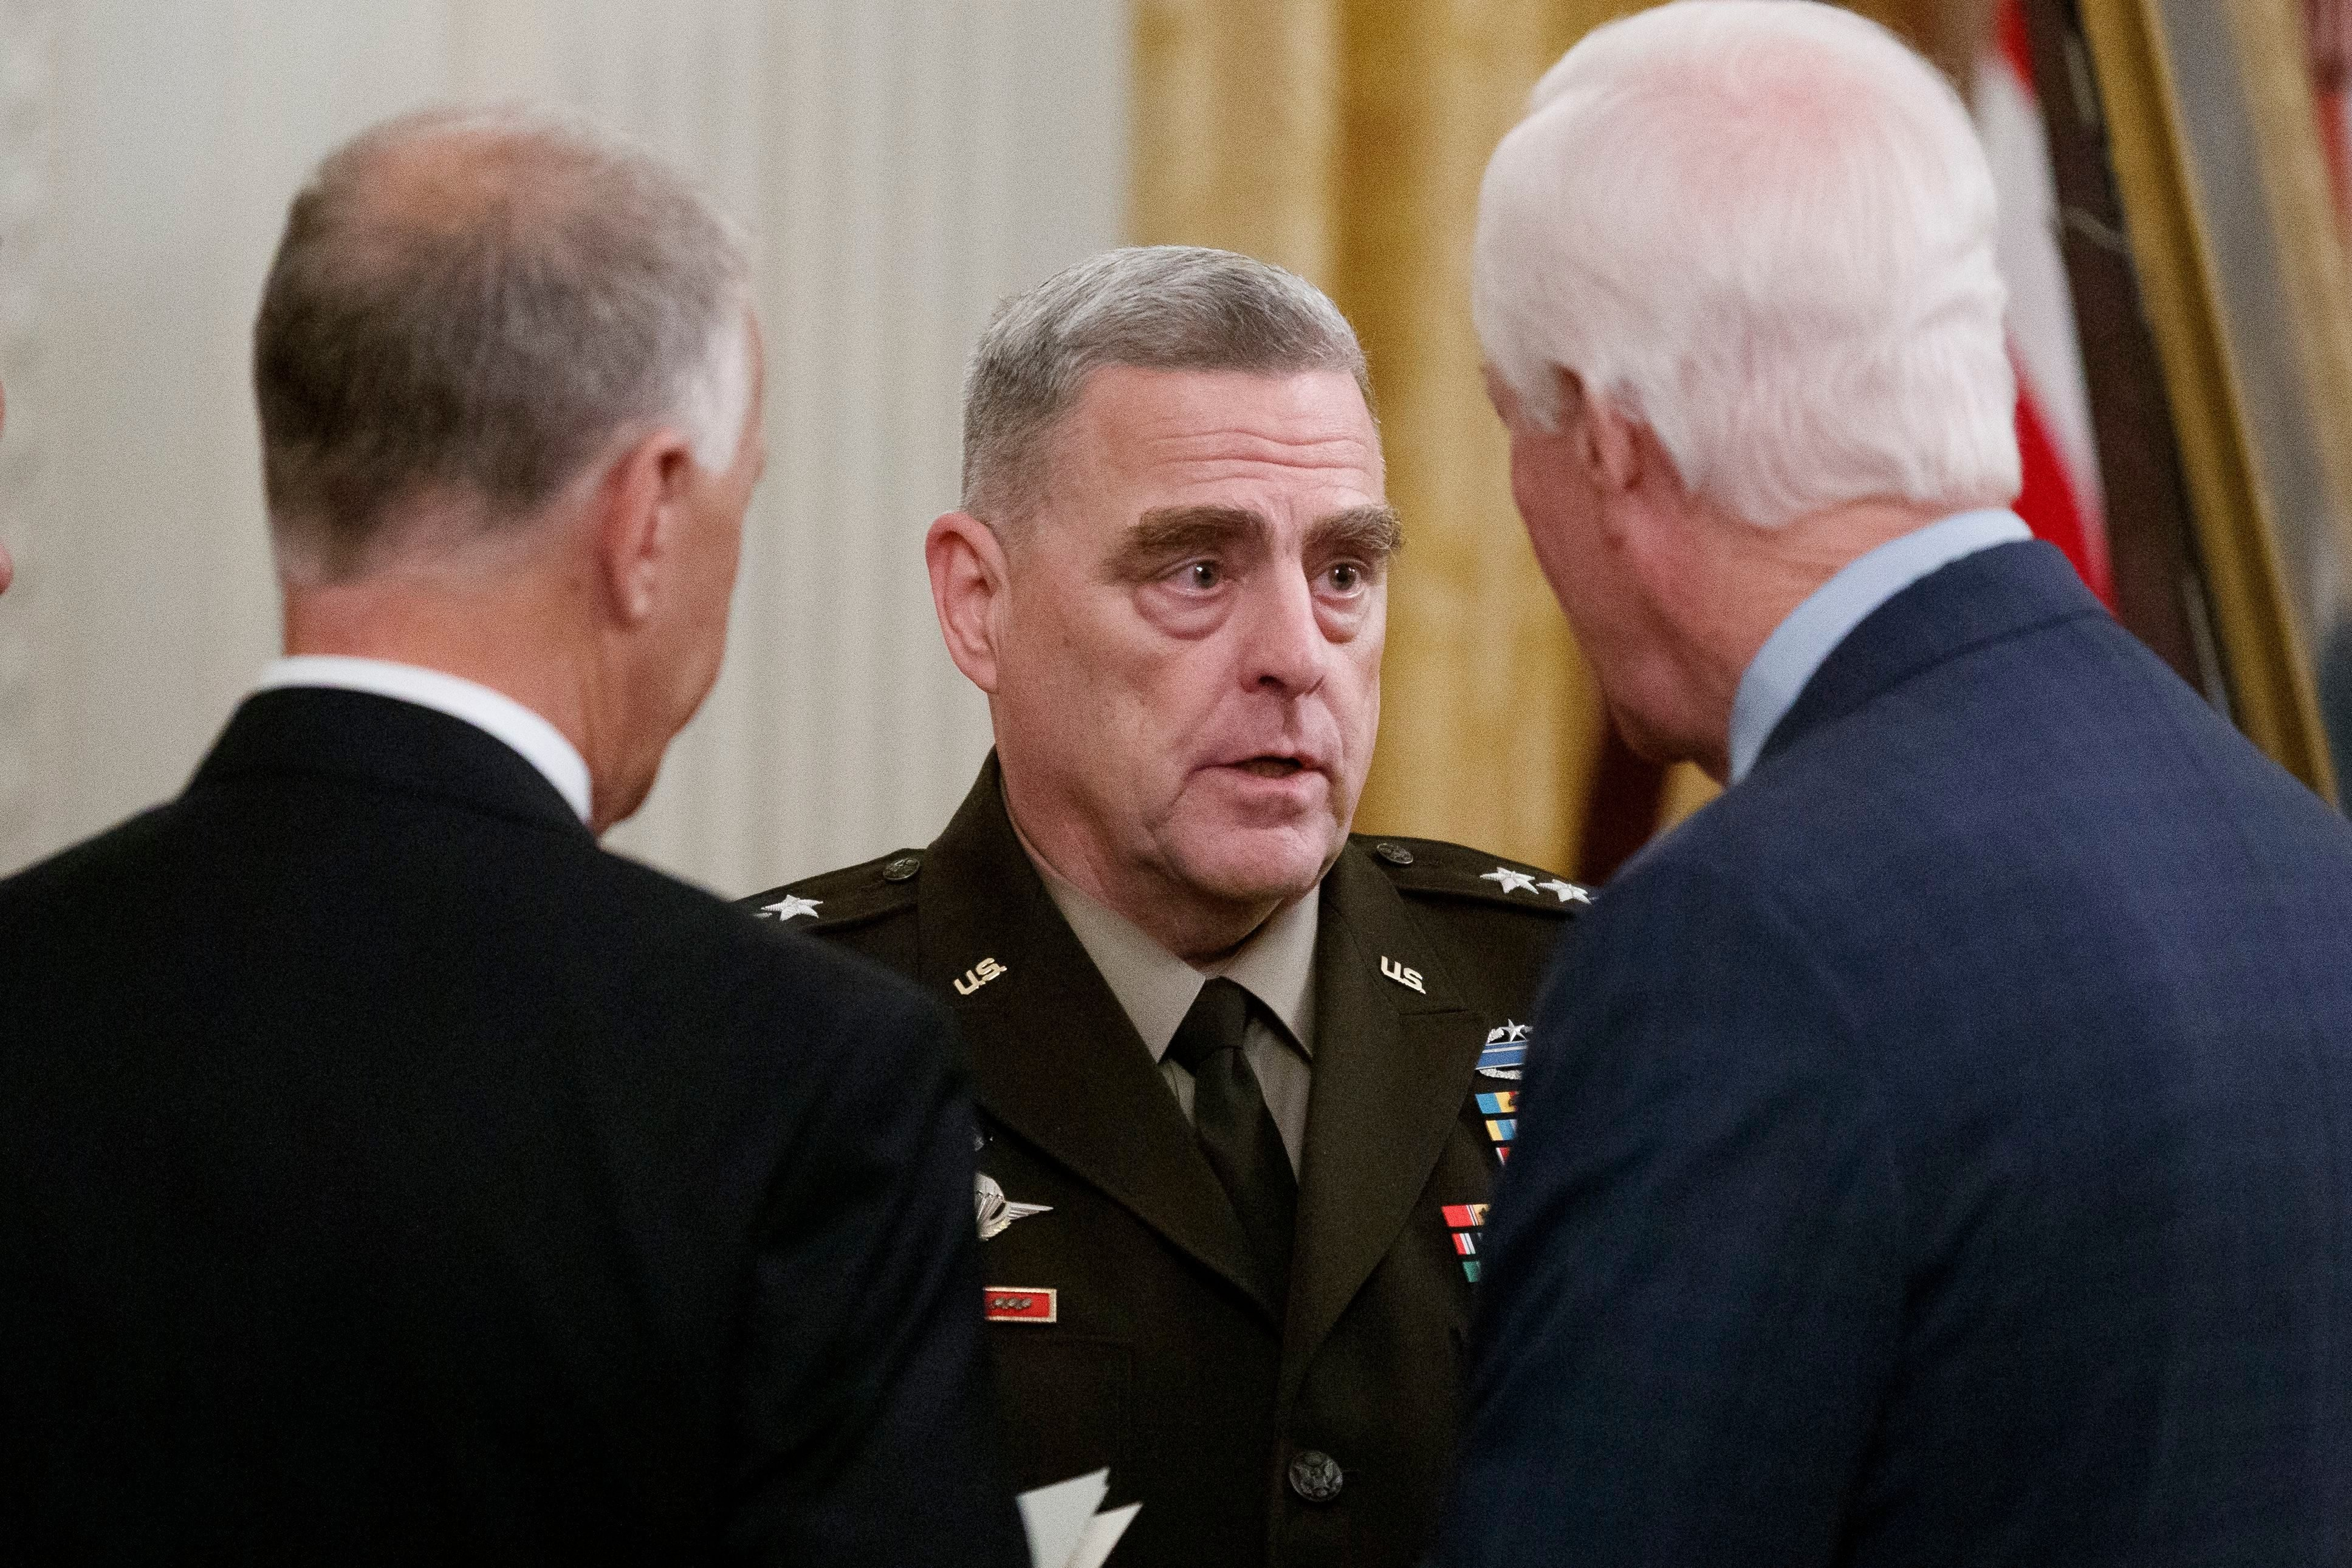 Mandatory Credit: Photo by Alex Brandon/AP/Shutterstock (10461265d) Sen. Thom Tillis, R-N.C., left, Joint Chiefs Chairman Gen. Mike Milley, and Sen. John Cornyn, R-Texas, talk before for a Medal of Honor Ceremony for U.S. Army Master Sgt. Matthew Williams, currently assigned to the 3rd Special Forces Group, in the East Room of the White House, in Washington Trump, Washington, USA - 30 Oct 2019